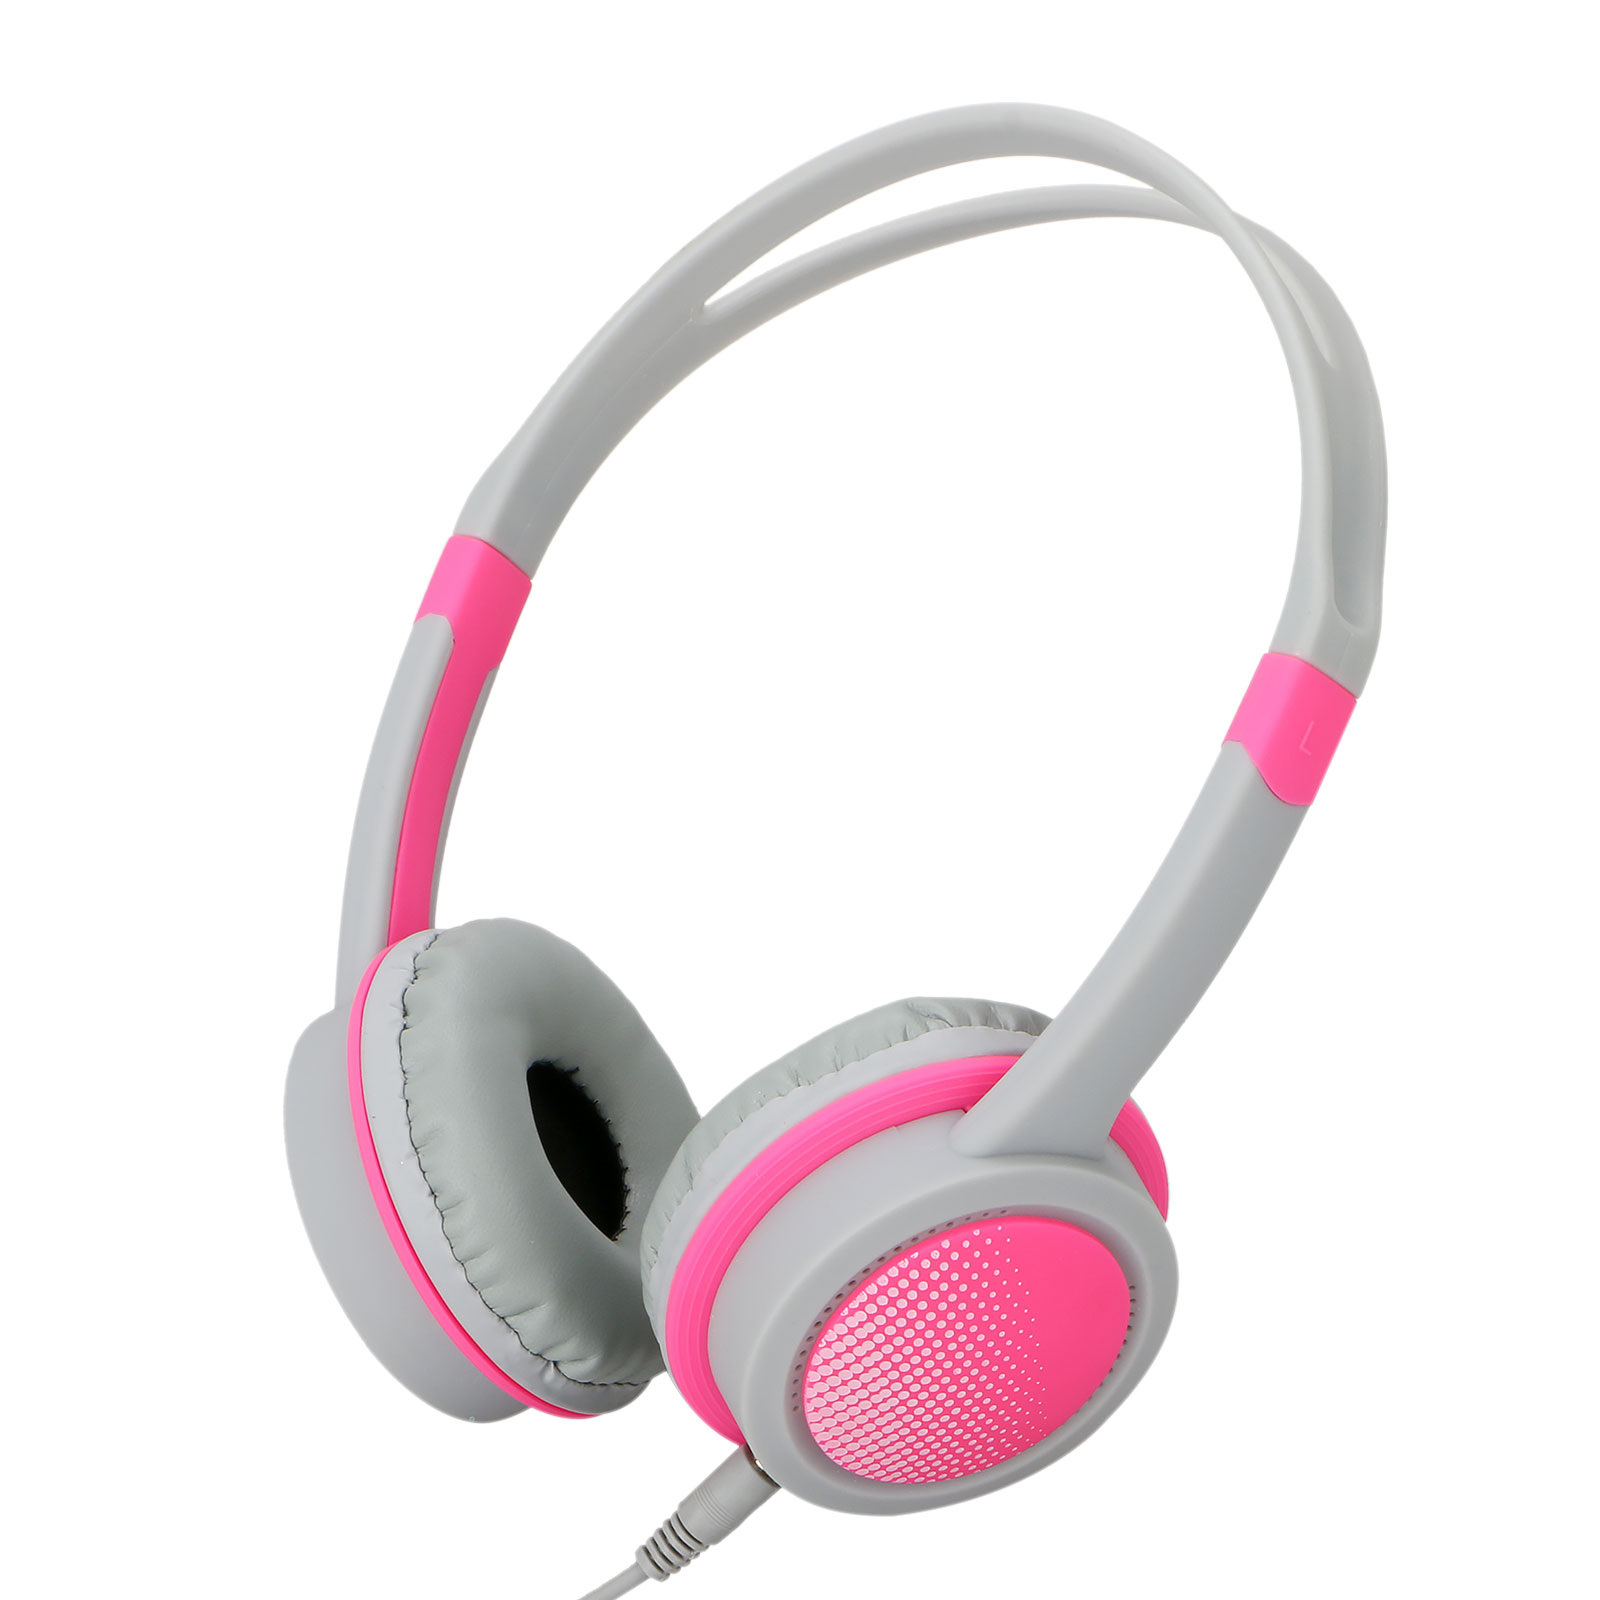 3.5mm Wired Kids Children Headphones Headsets Compatible with Cell Phones iPad Tablets PC Computer MP4 MP3